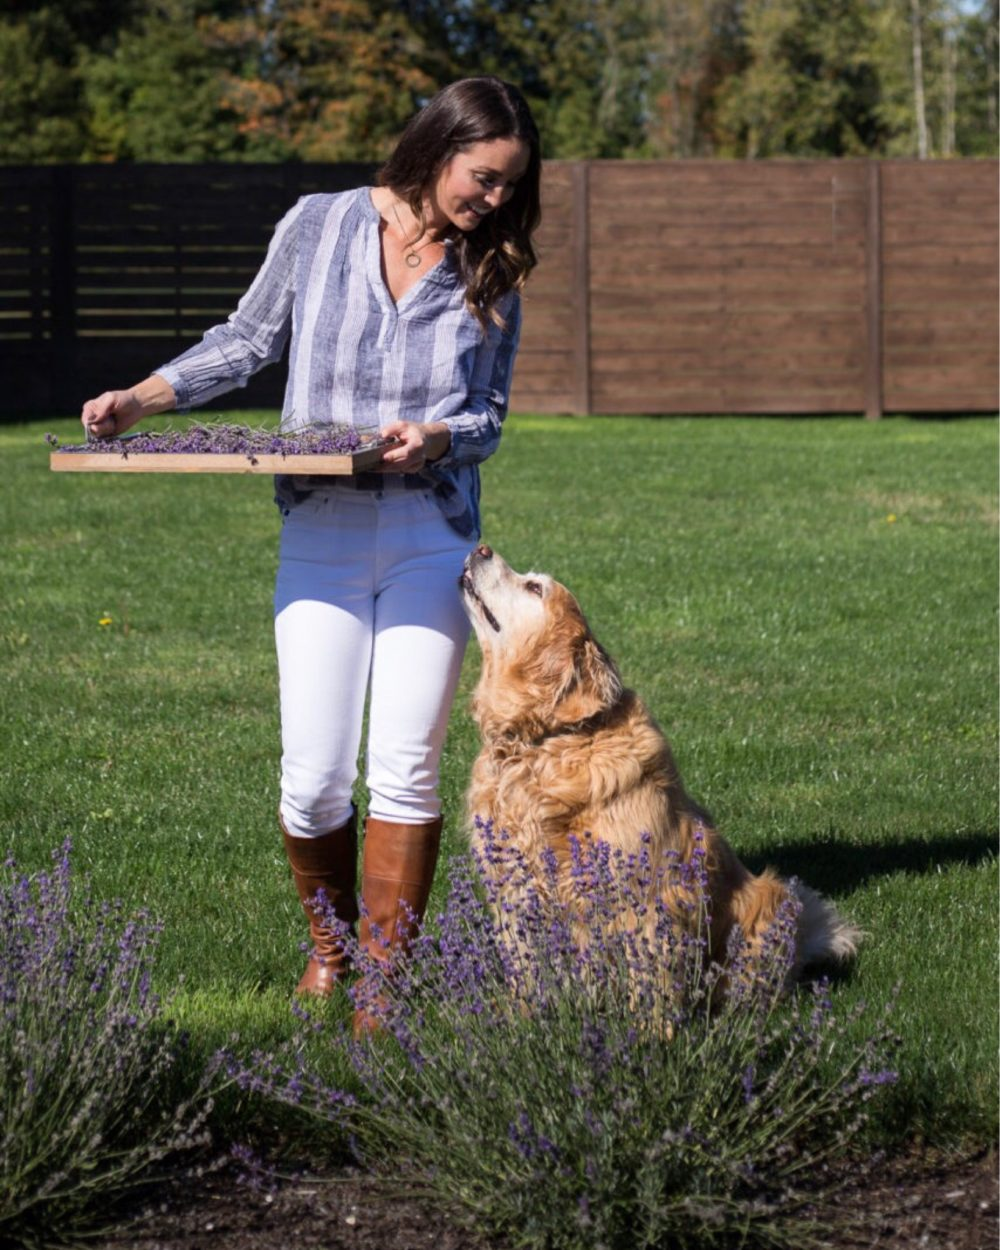 Pruning fresh lavender in the fall with sweet golden retriever by my side.